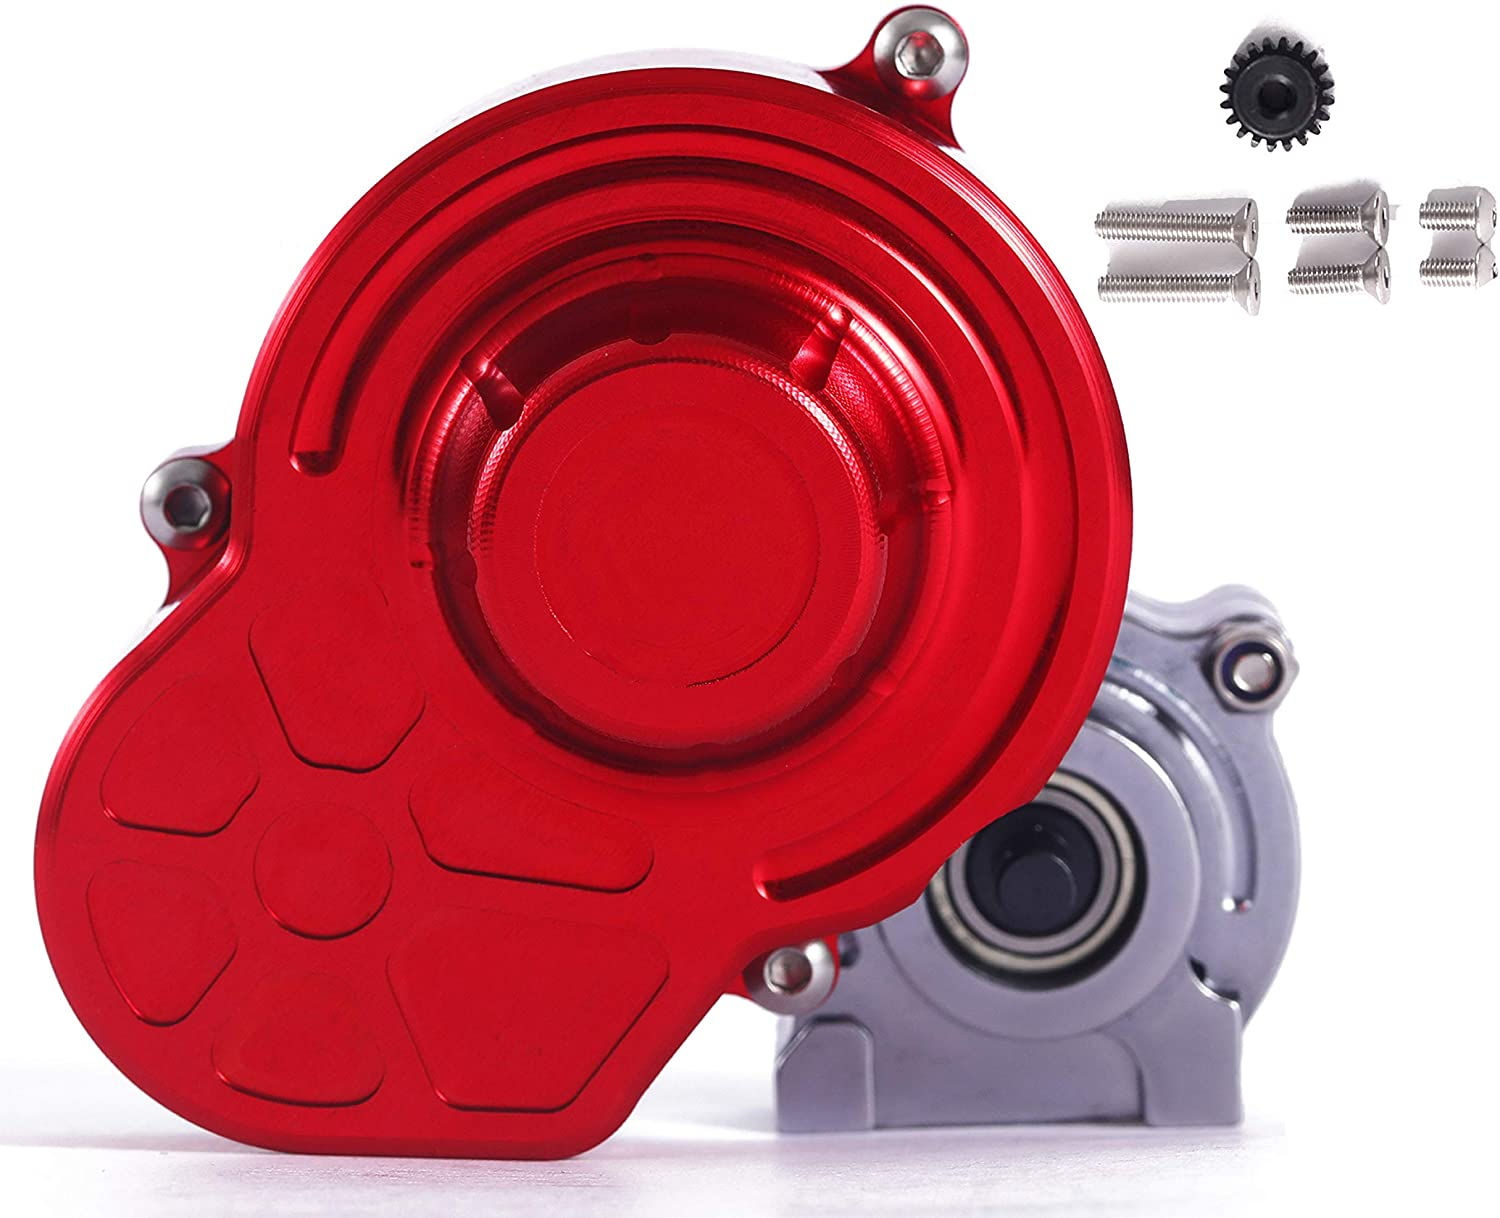 Alloy Assembled Transmission Gearbox W//Motor Gear For RC 1:10 AXIAL SCX10 WRAITH